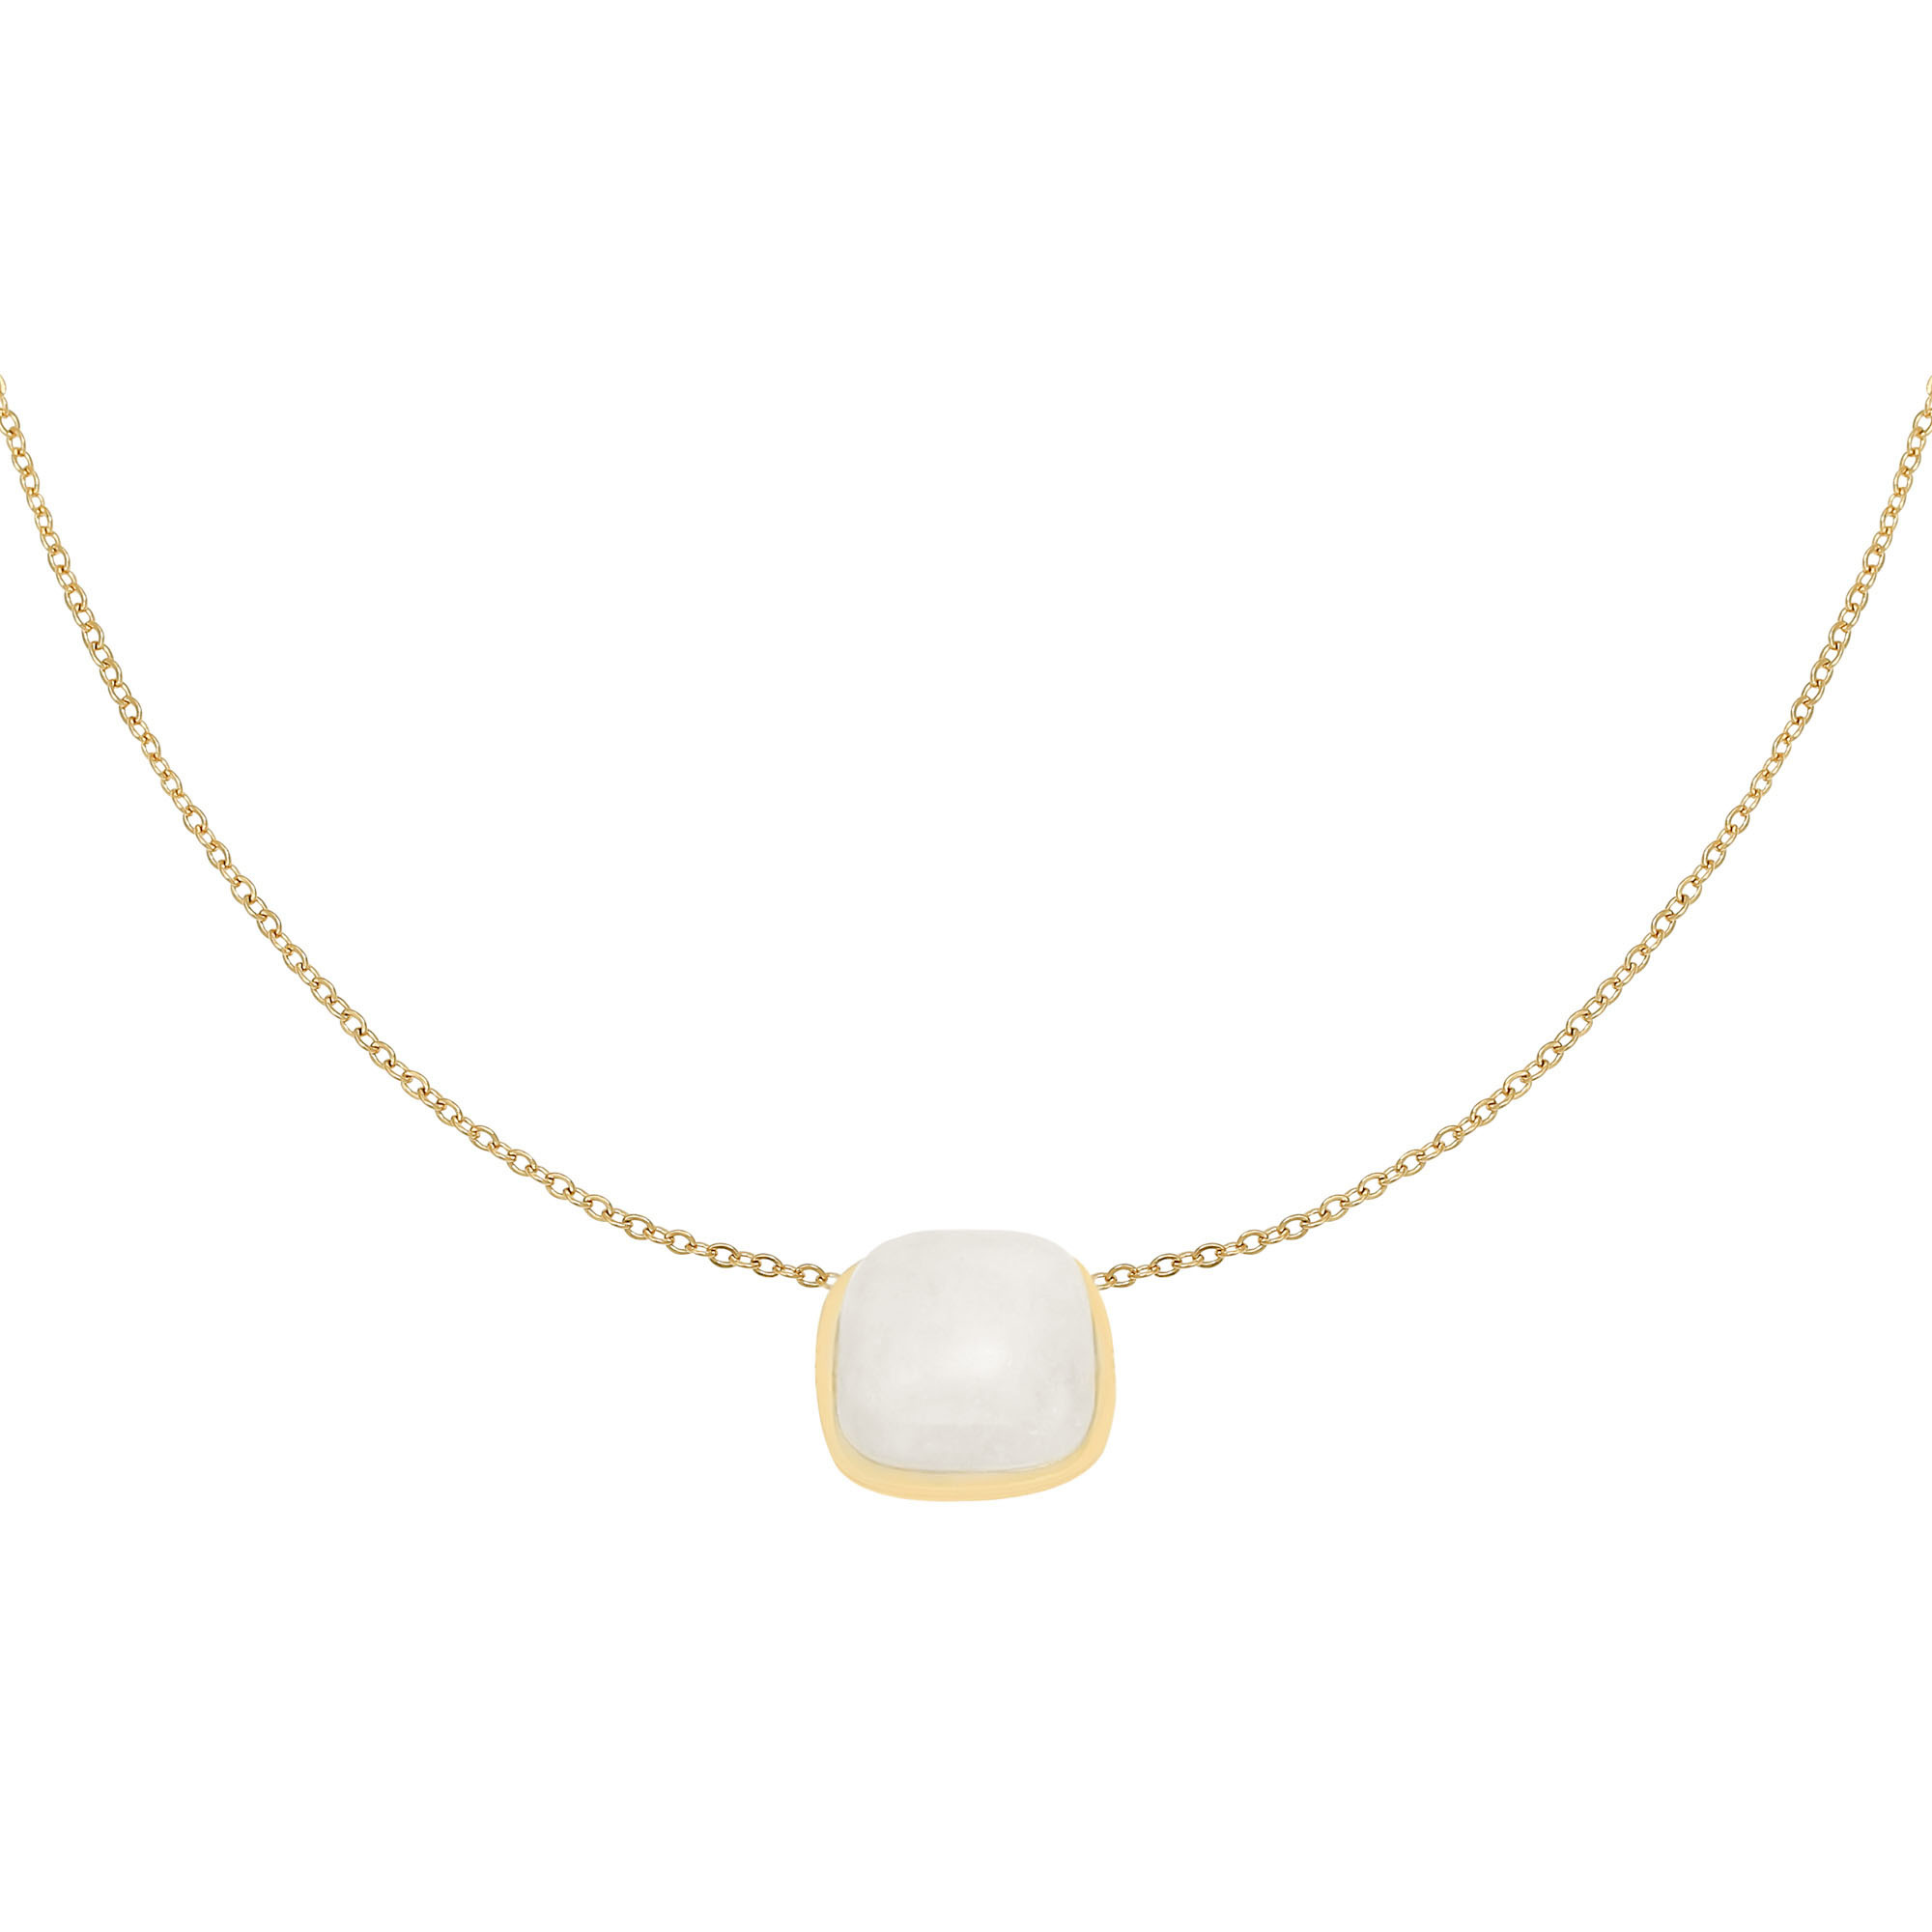 With love Necklace in nature - white